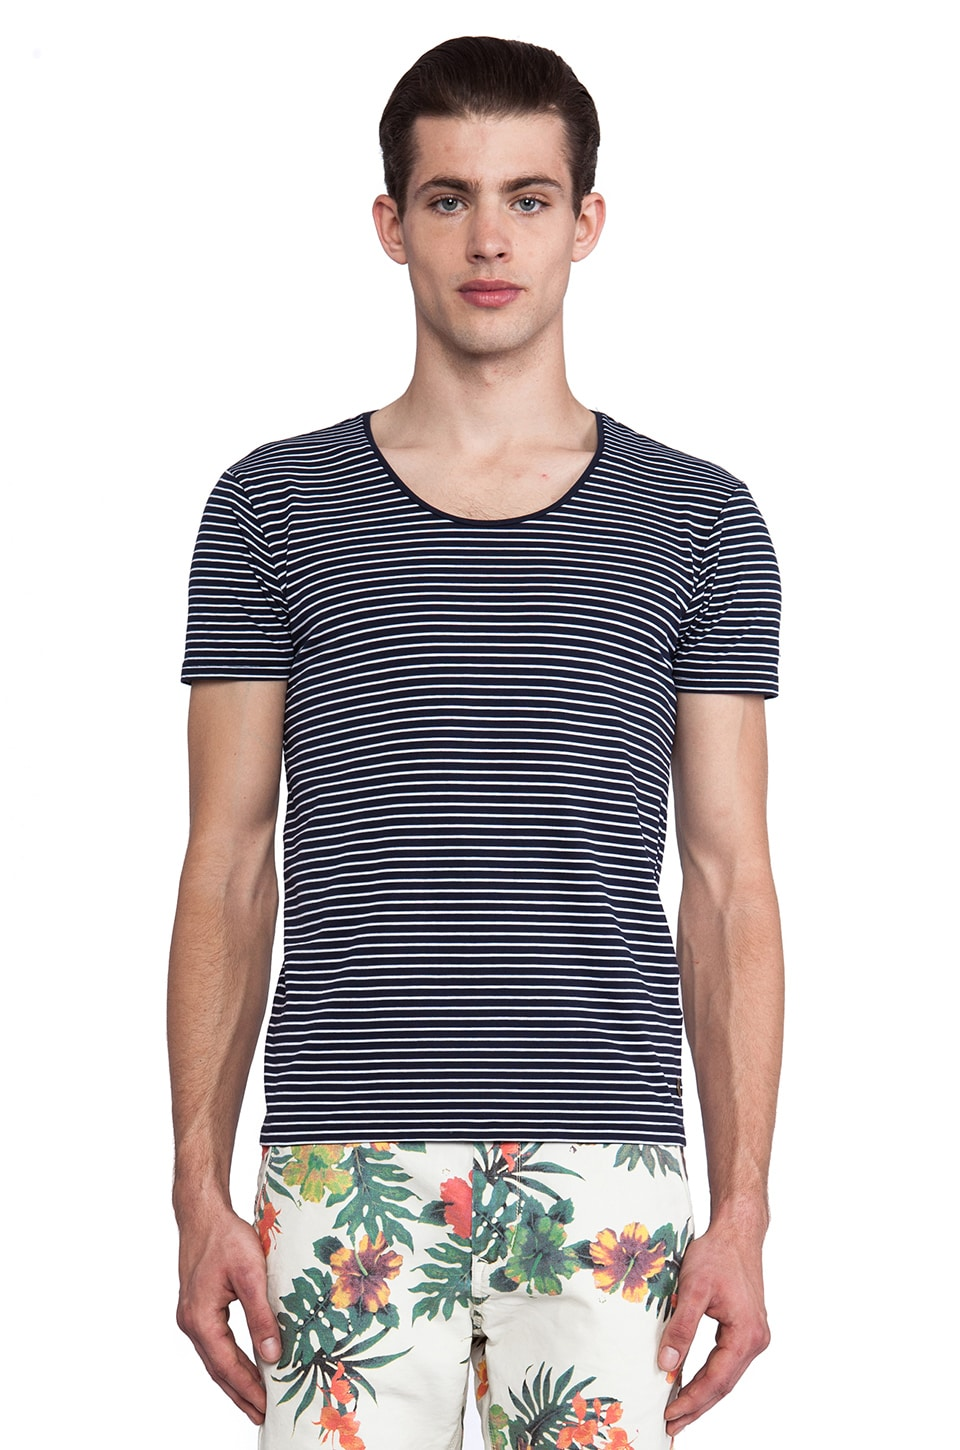 Scotch & Soda Basic Crewneck Striped Tee in Navy & White